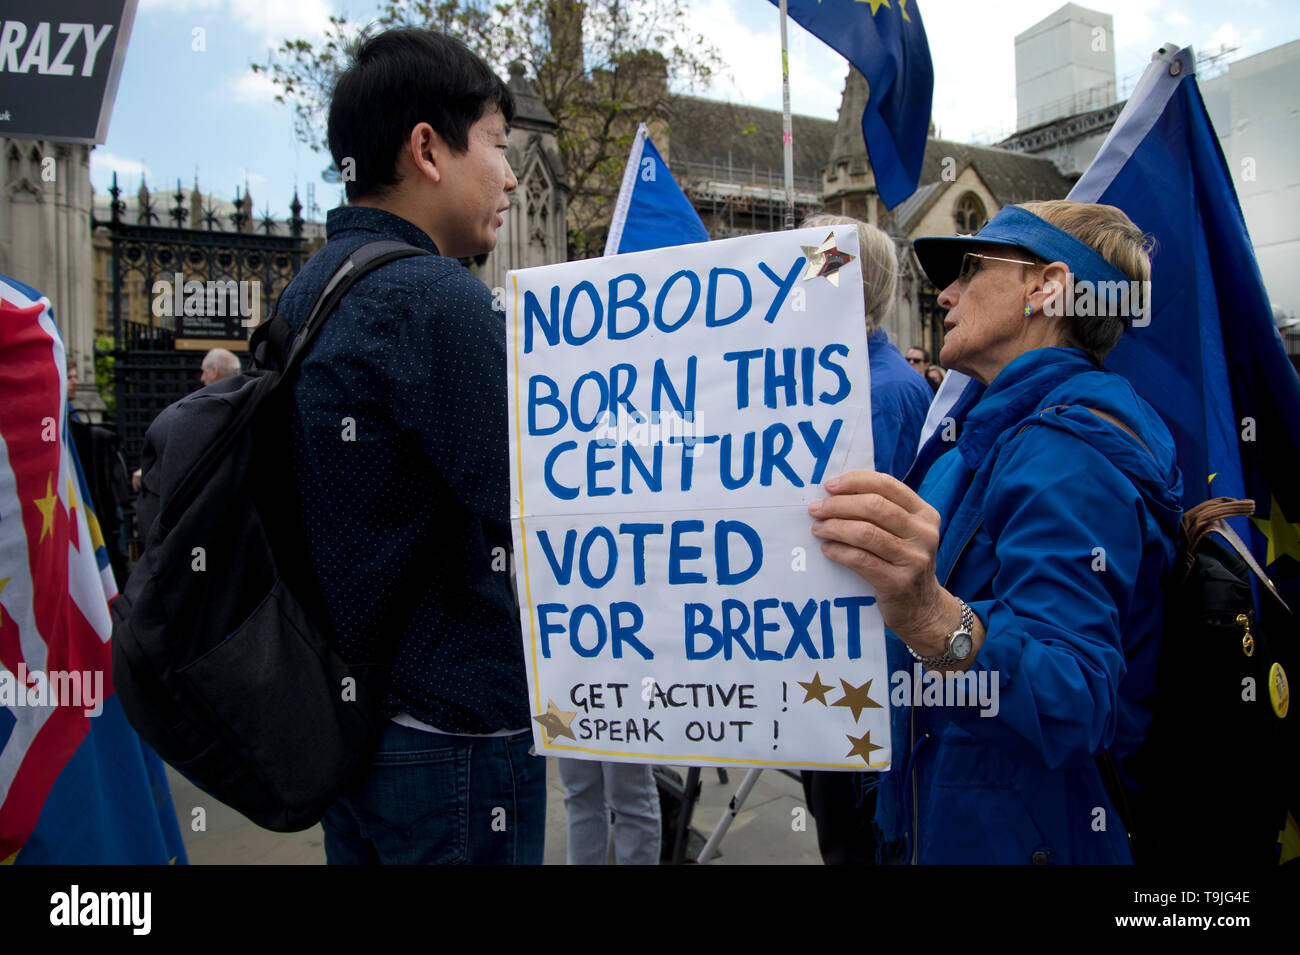 Parliament Square, Westminster, London. May 17th 2019. A Remain activist talks to a passer-by and holds a placard saying 'Nobody born this century vot - Stock Image